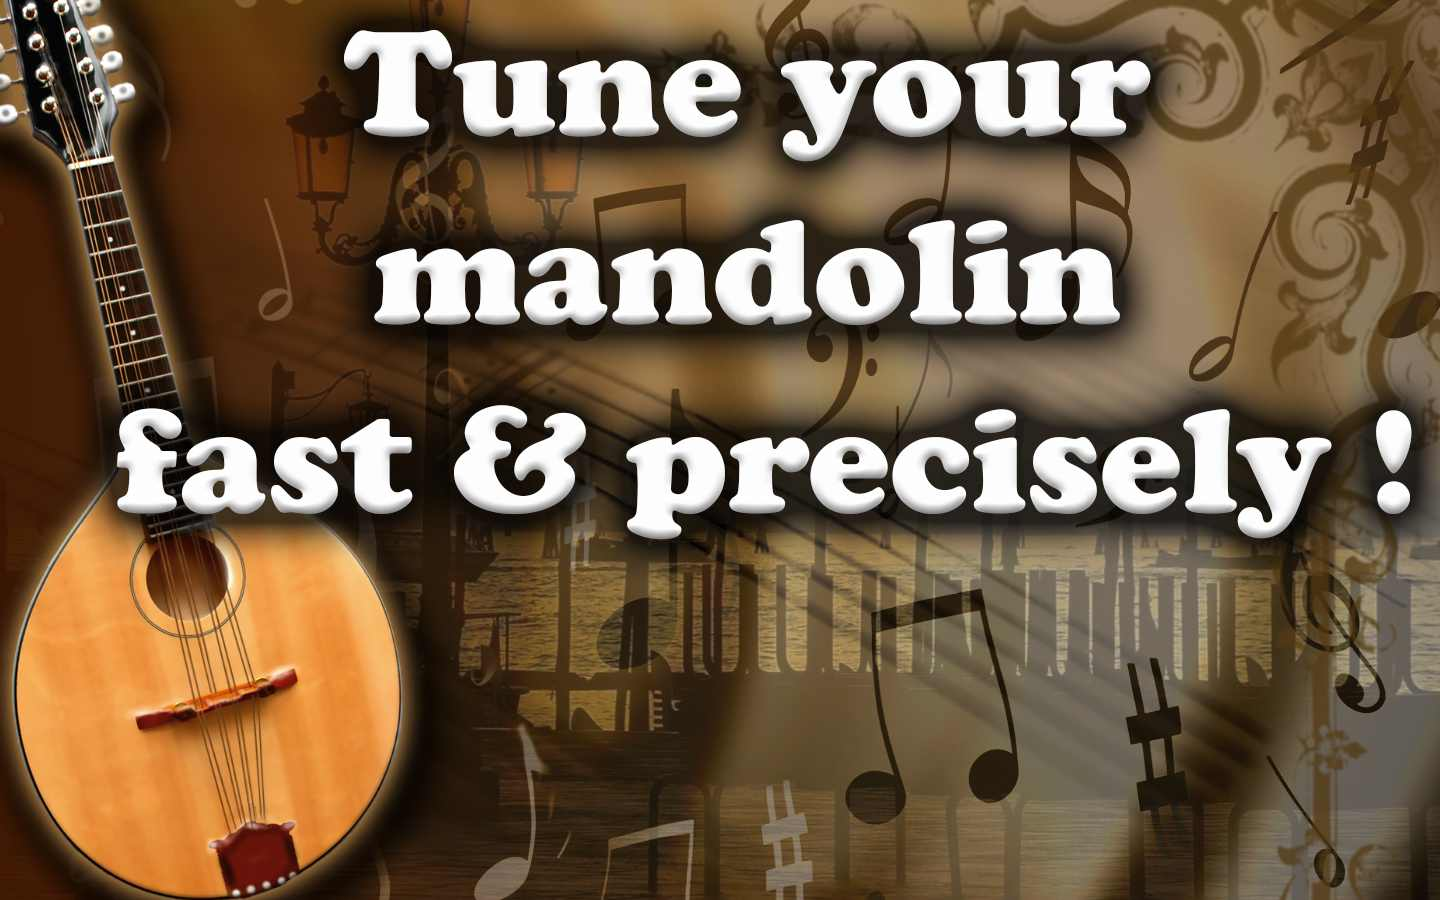 tune-your-mandolin-fast-and-precisely0